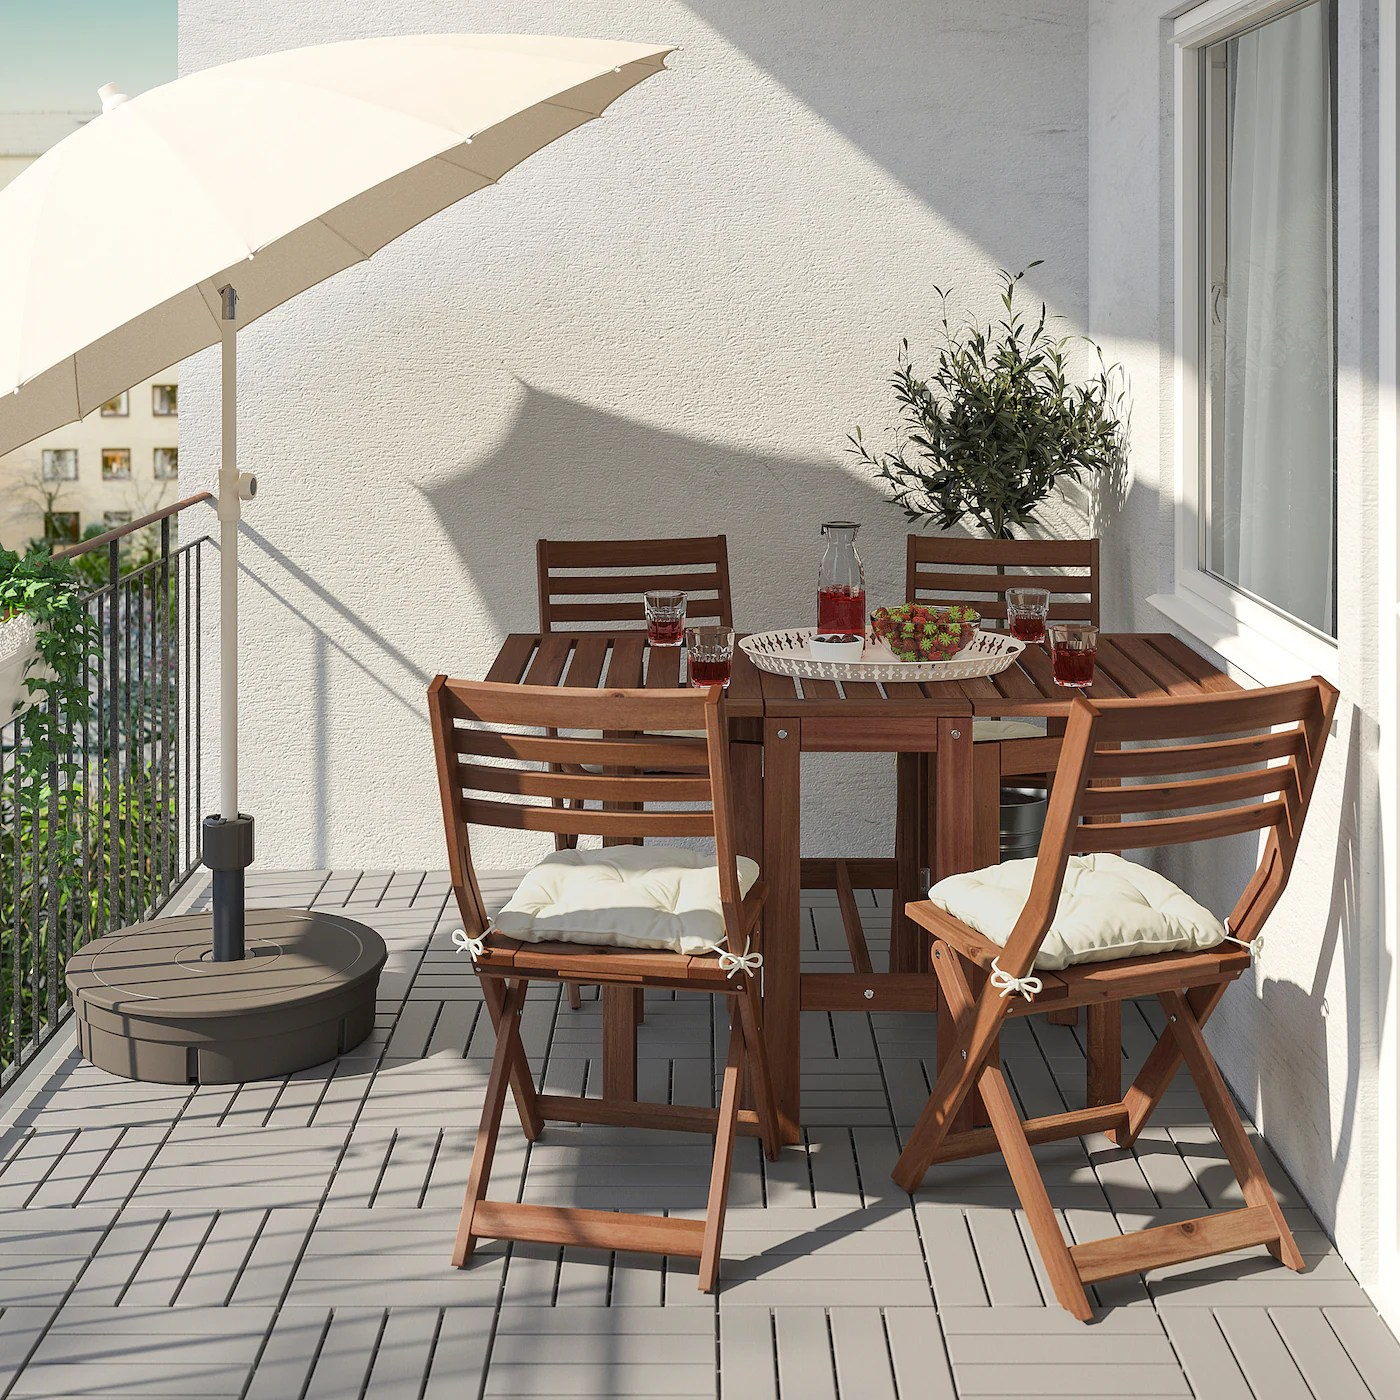 applaro gateleg table outdoor brown stained 13 3 8 32 5 8 51 5 8x27 1 2